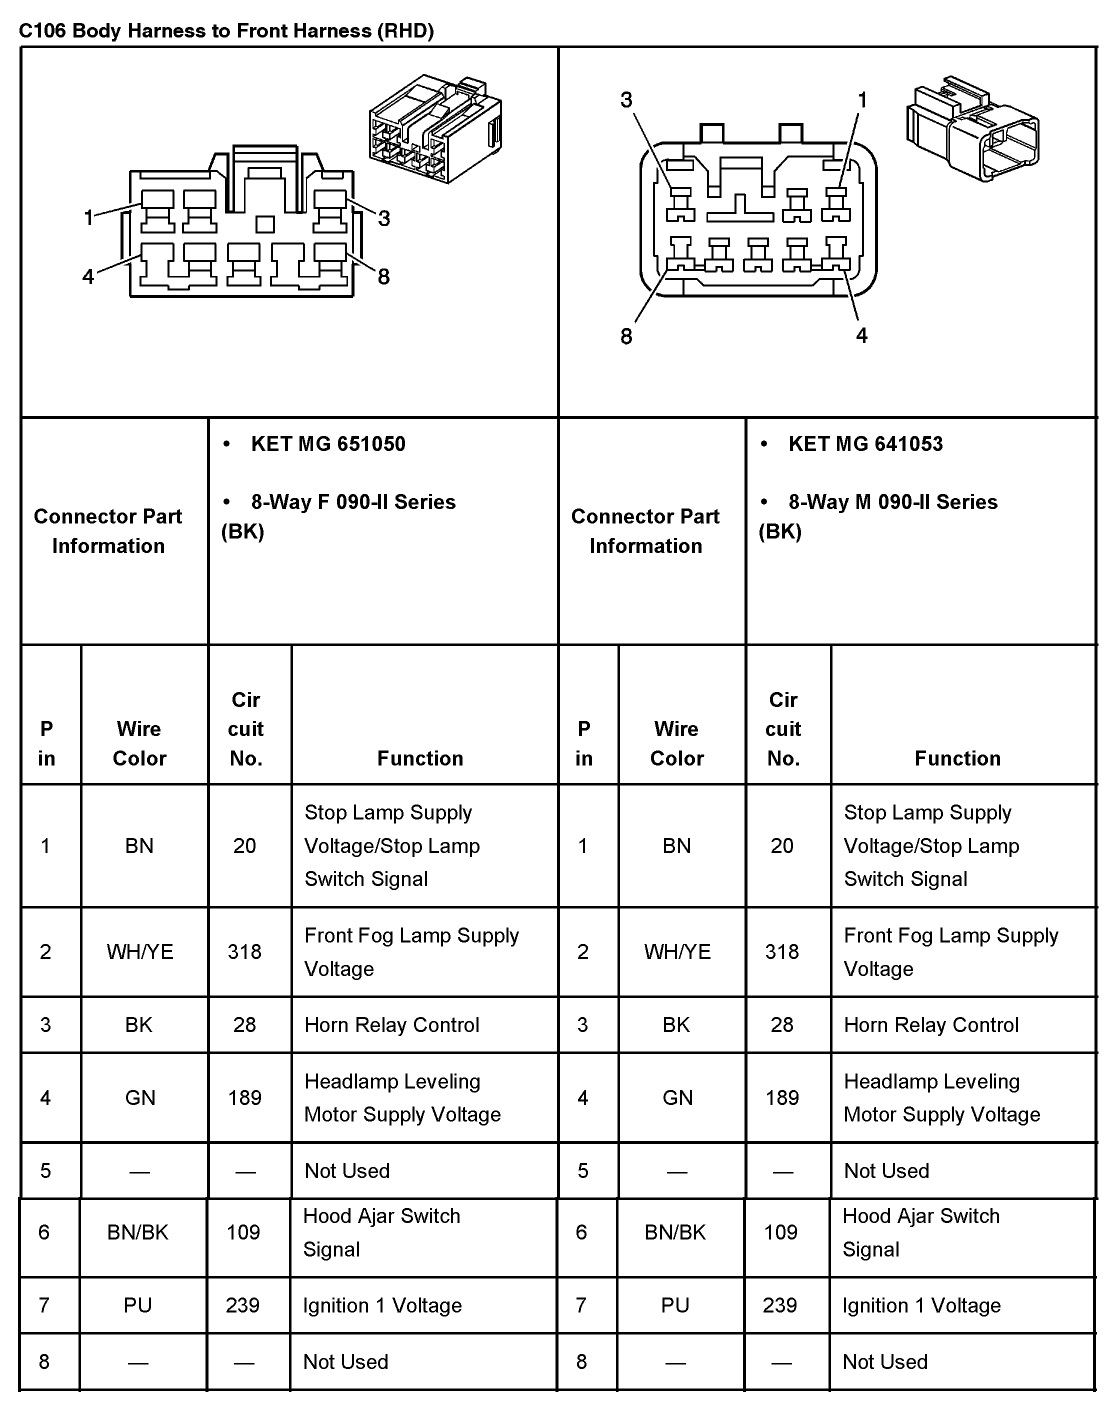 2010 Mazda Rx 8 Fuse Box Diagram Wiring Library Gm Car Stereo Ignition Connector Data Diagrams